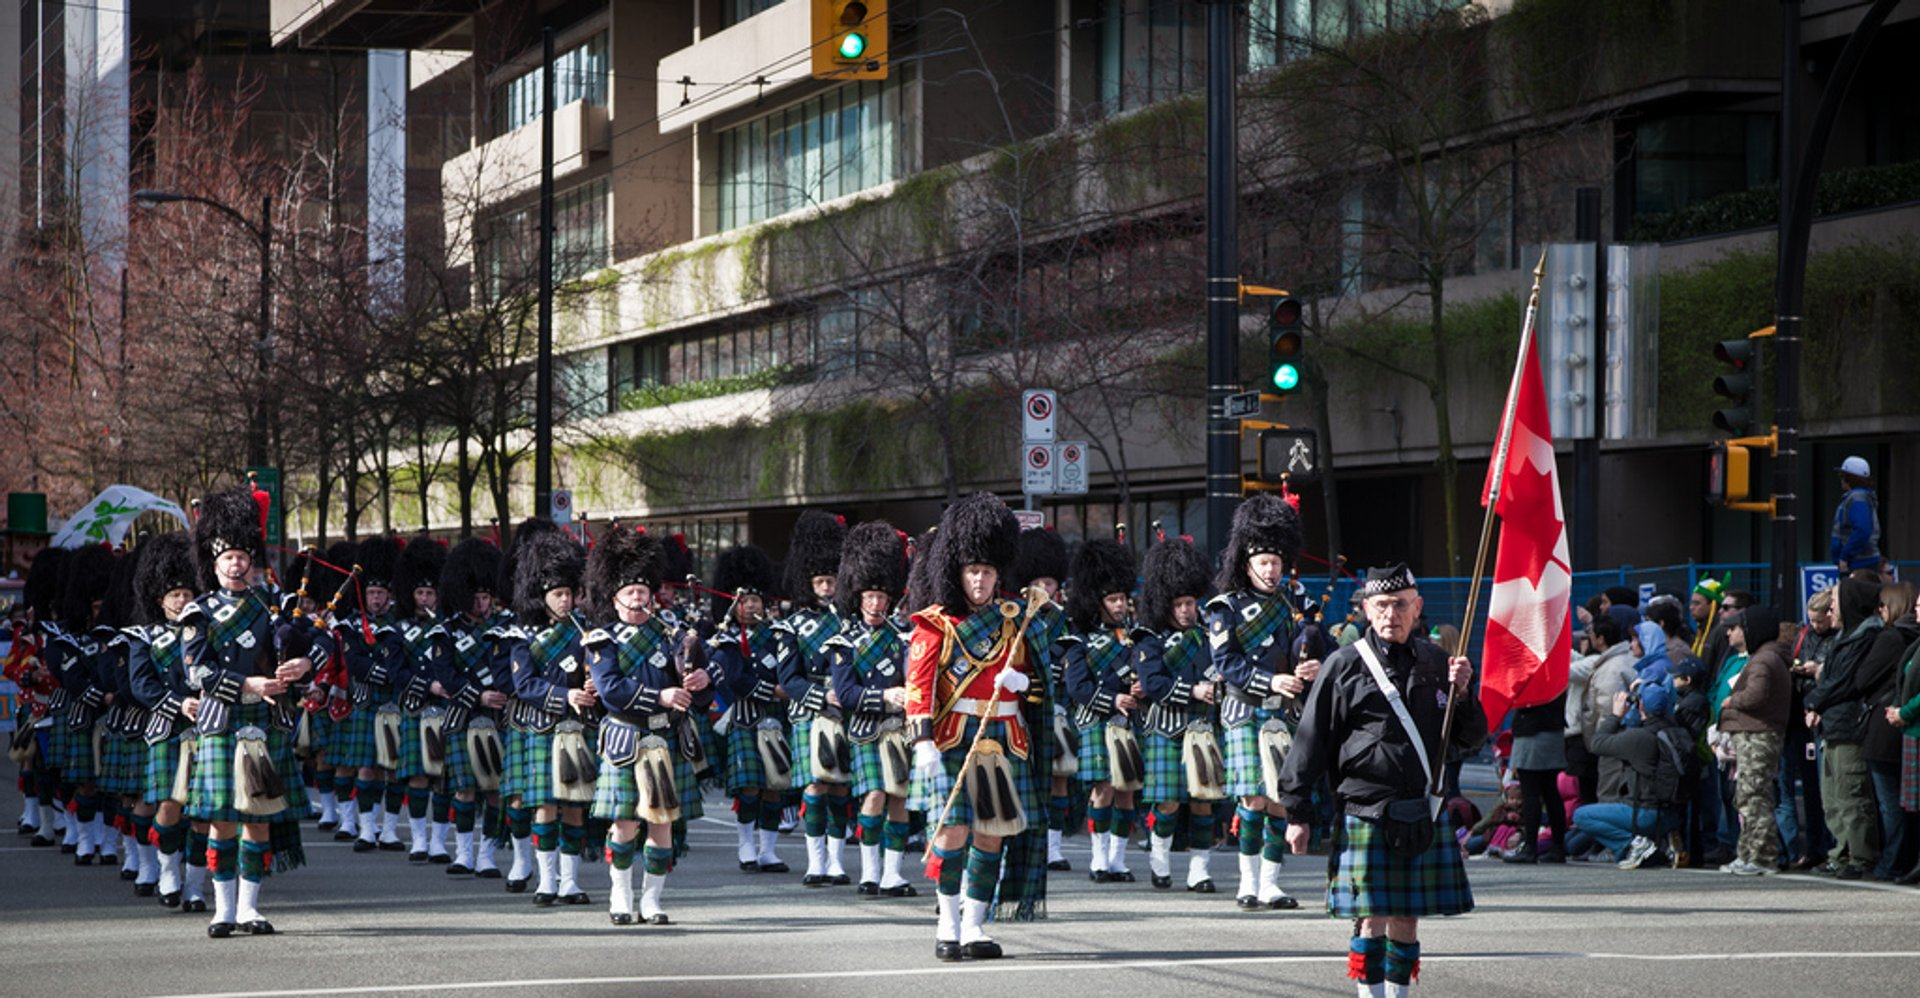 St. Patrick's Day Week in Vancouver - Best Season 2019